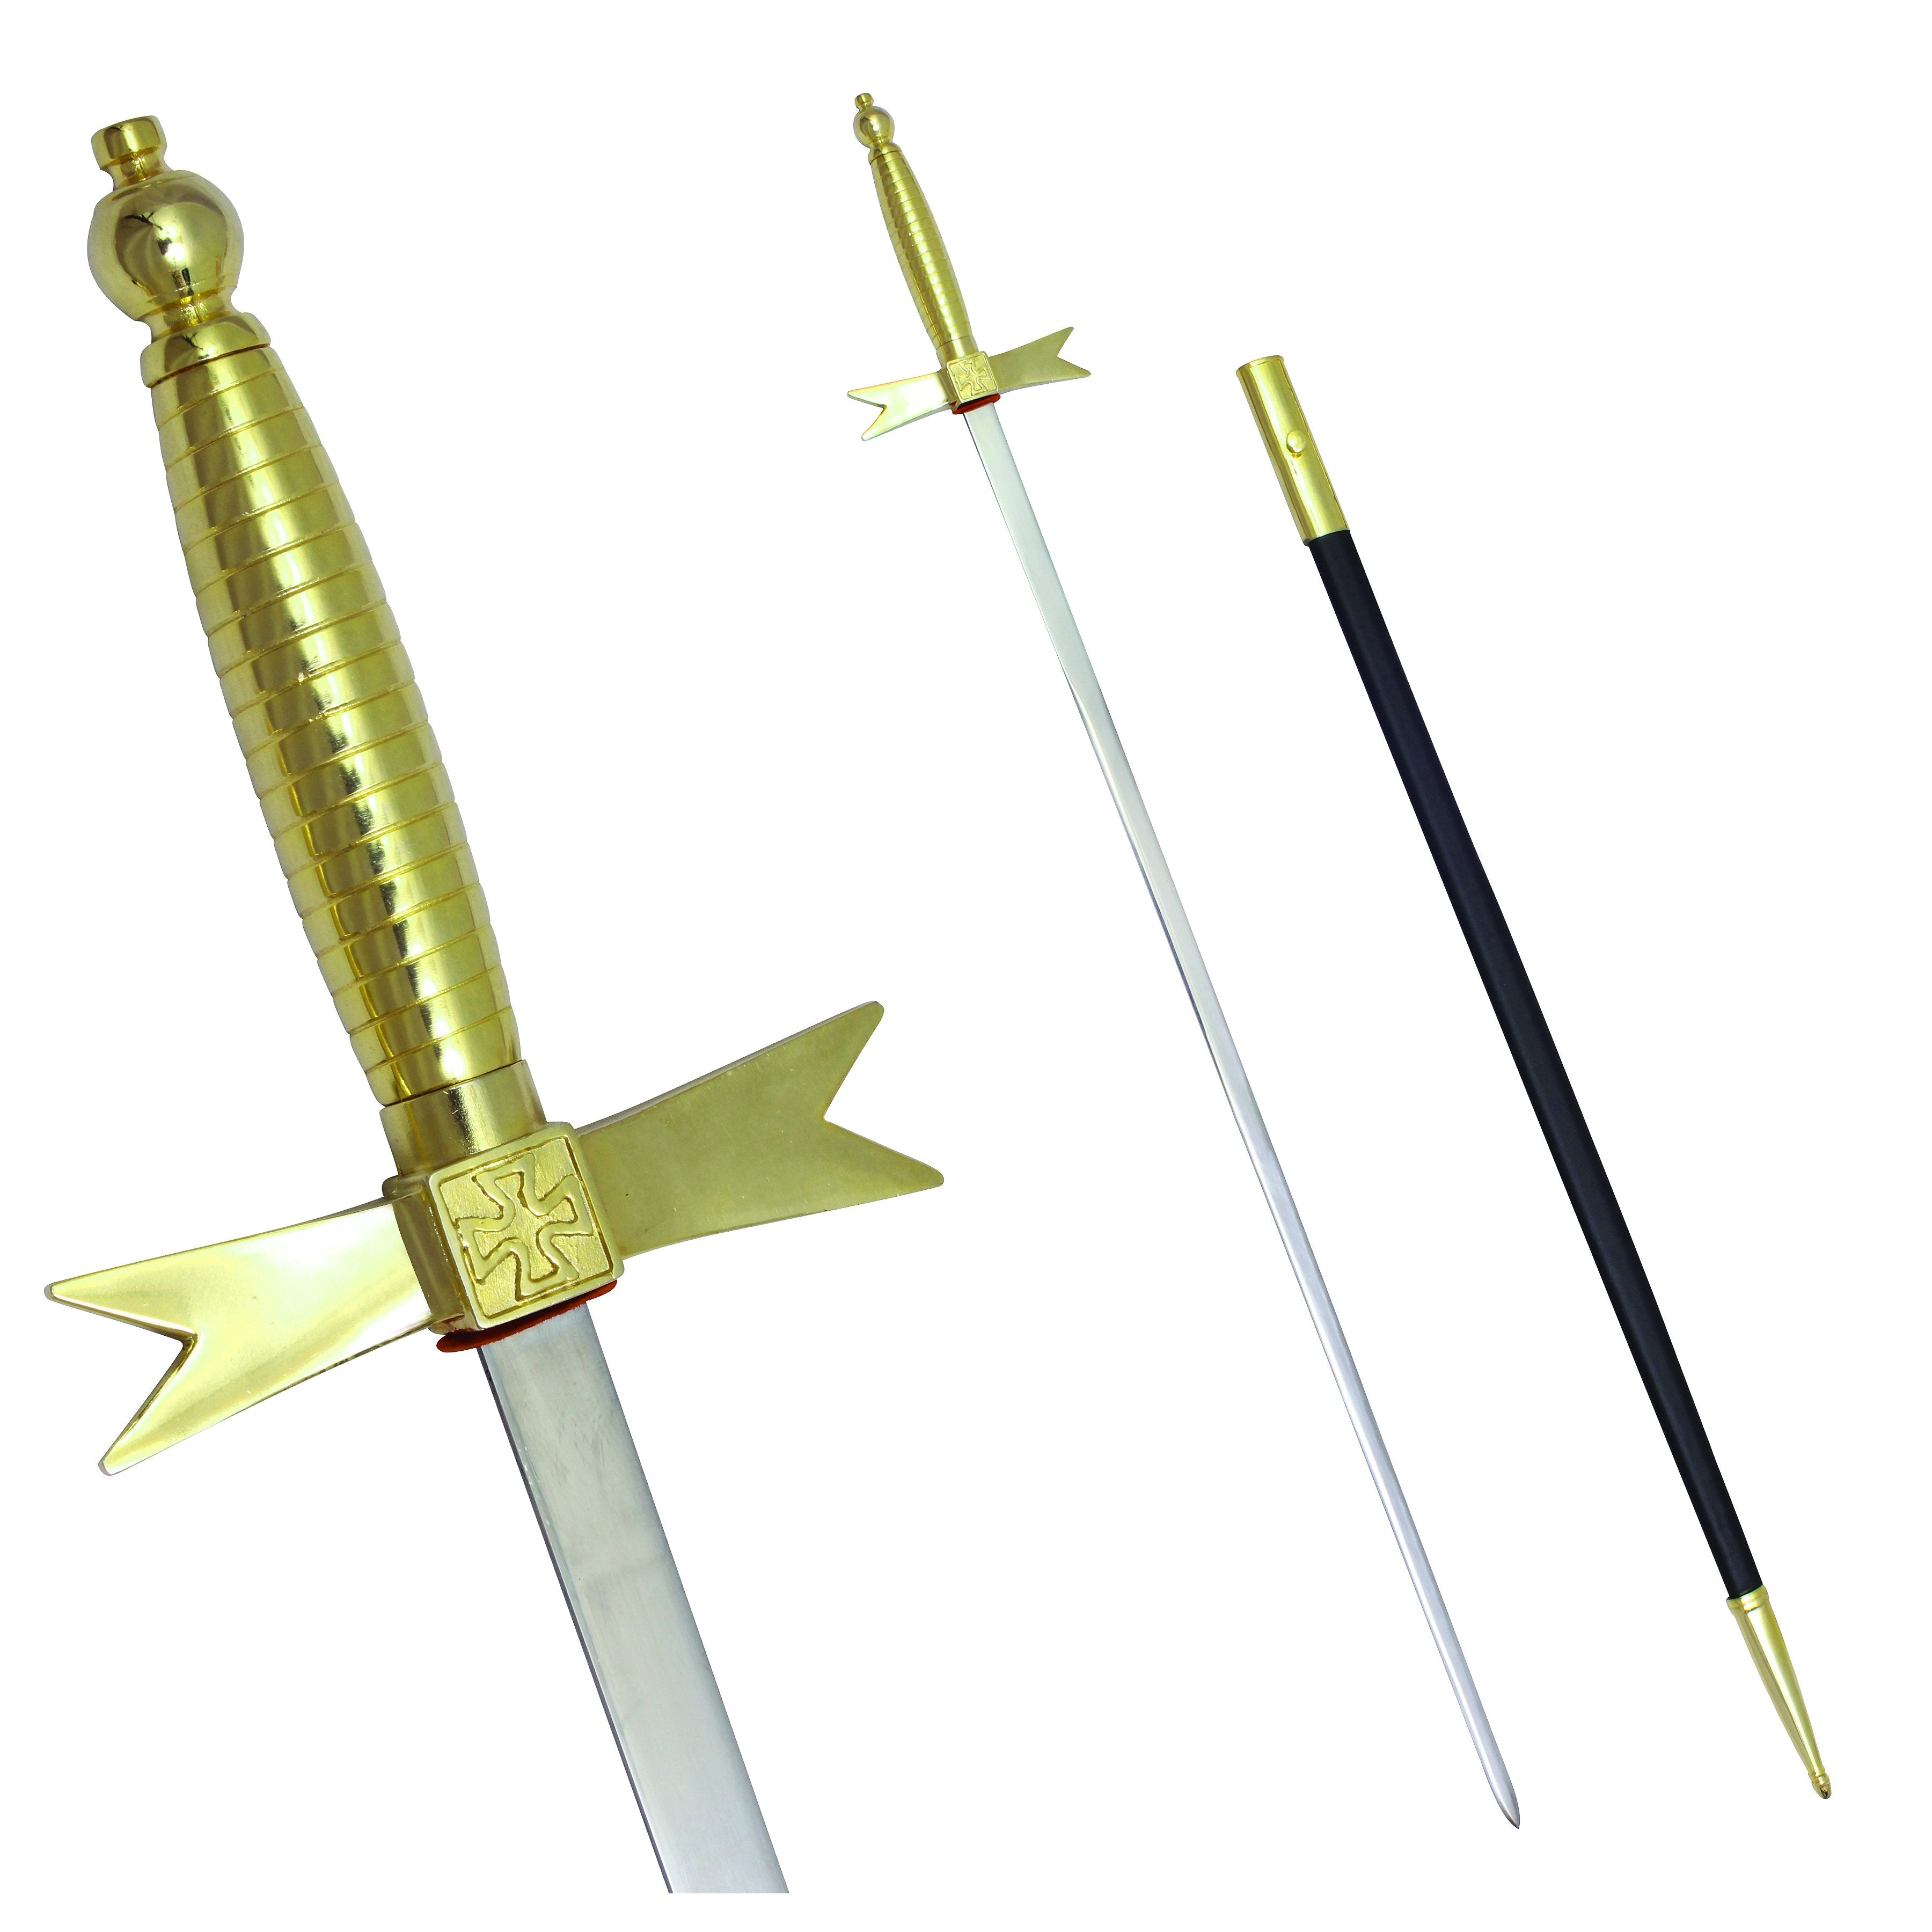 "Masonic Knights Templar Sword with Gold Hilt and Black Scabbard 35 3/4"" + Free Case - Bricks Masons"